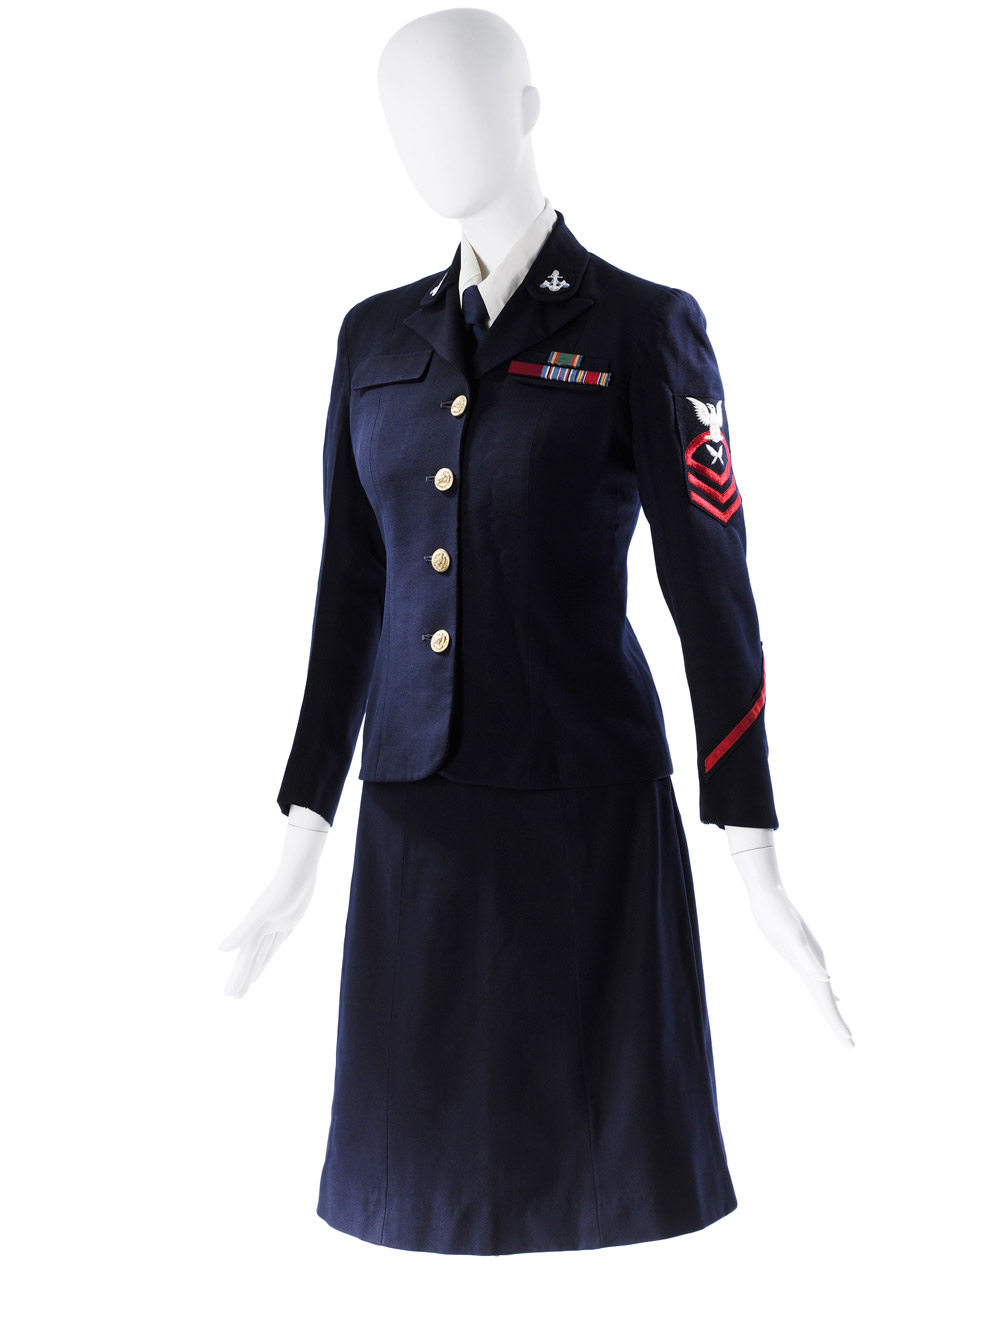 Mainbocher U.S. Navy WAVES uniform